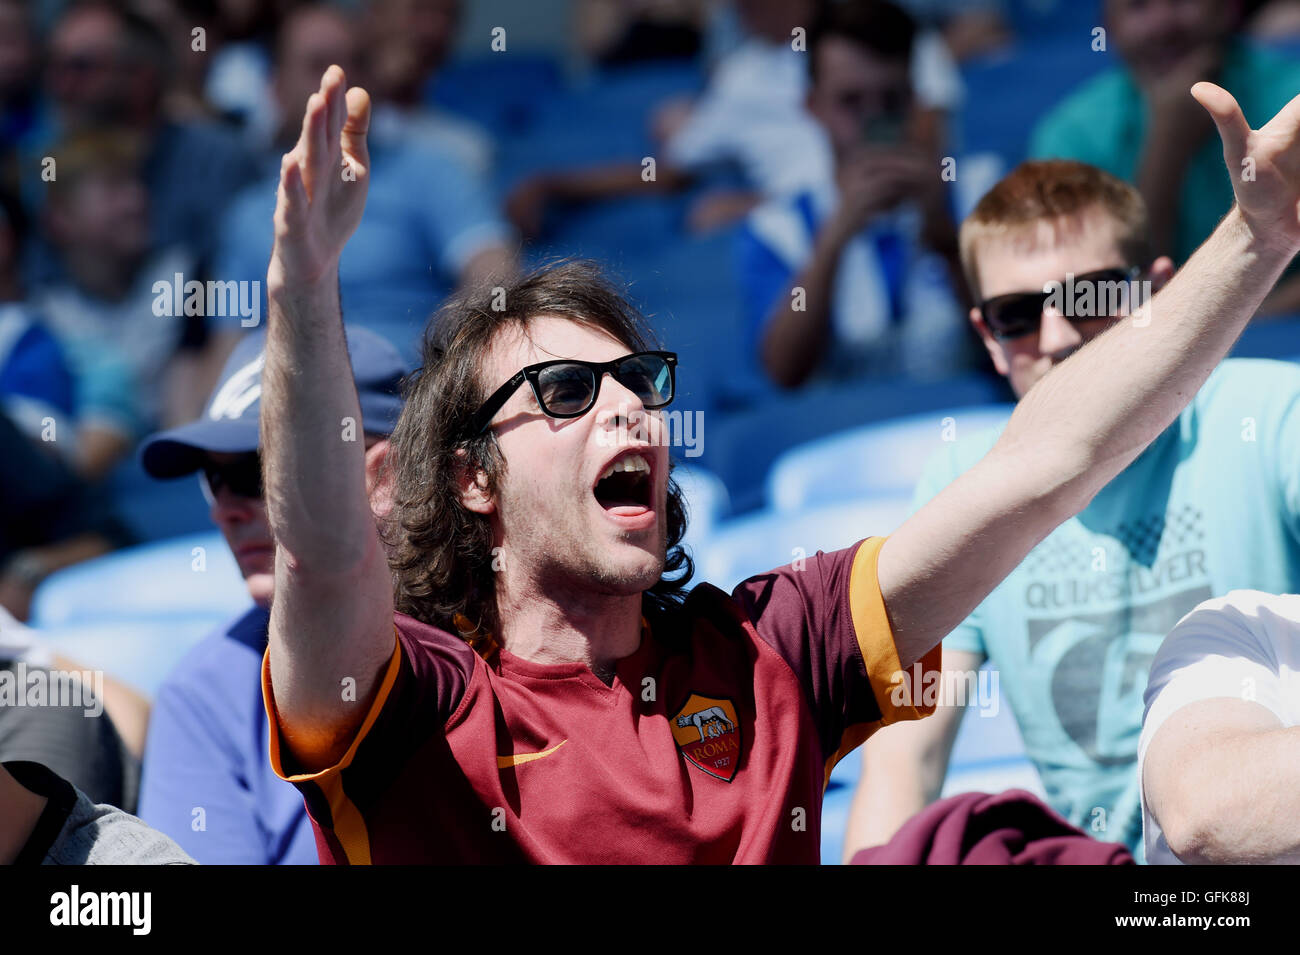 A Roma fan amongst Brighton fans during the Friendly match between Brighton and Hove Albion and Lazio at the American - Stock Image